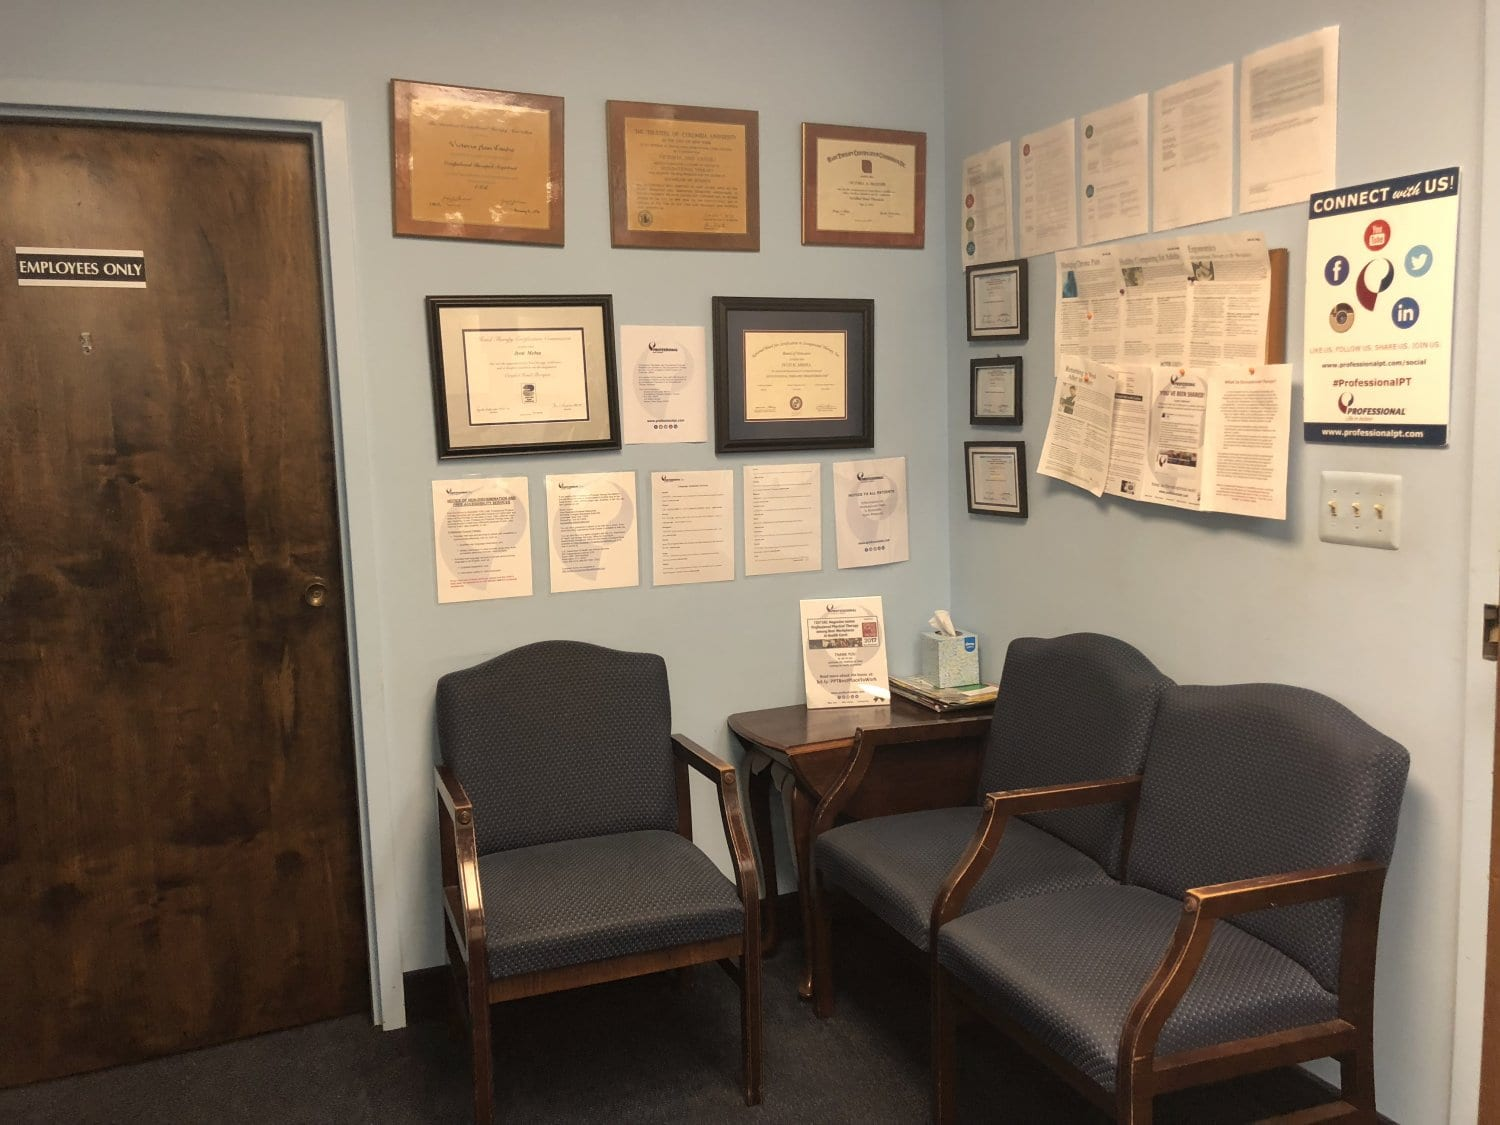 This is an image of part of the waiting room at our physical therapy clinic in Union, New Jersey.